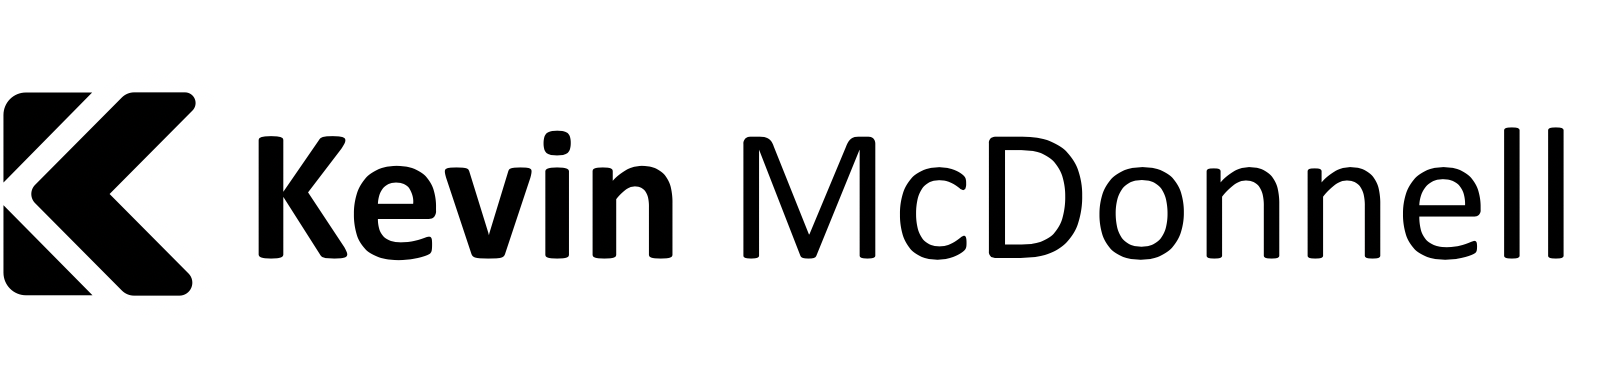 Kevin McDonnell